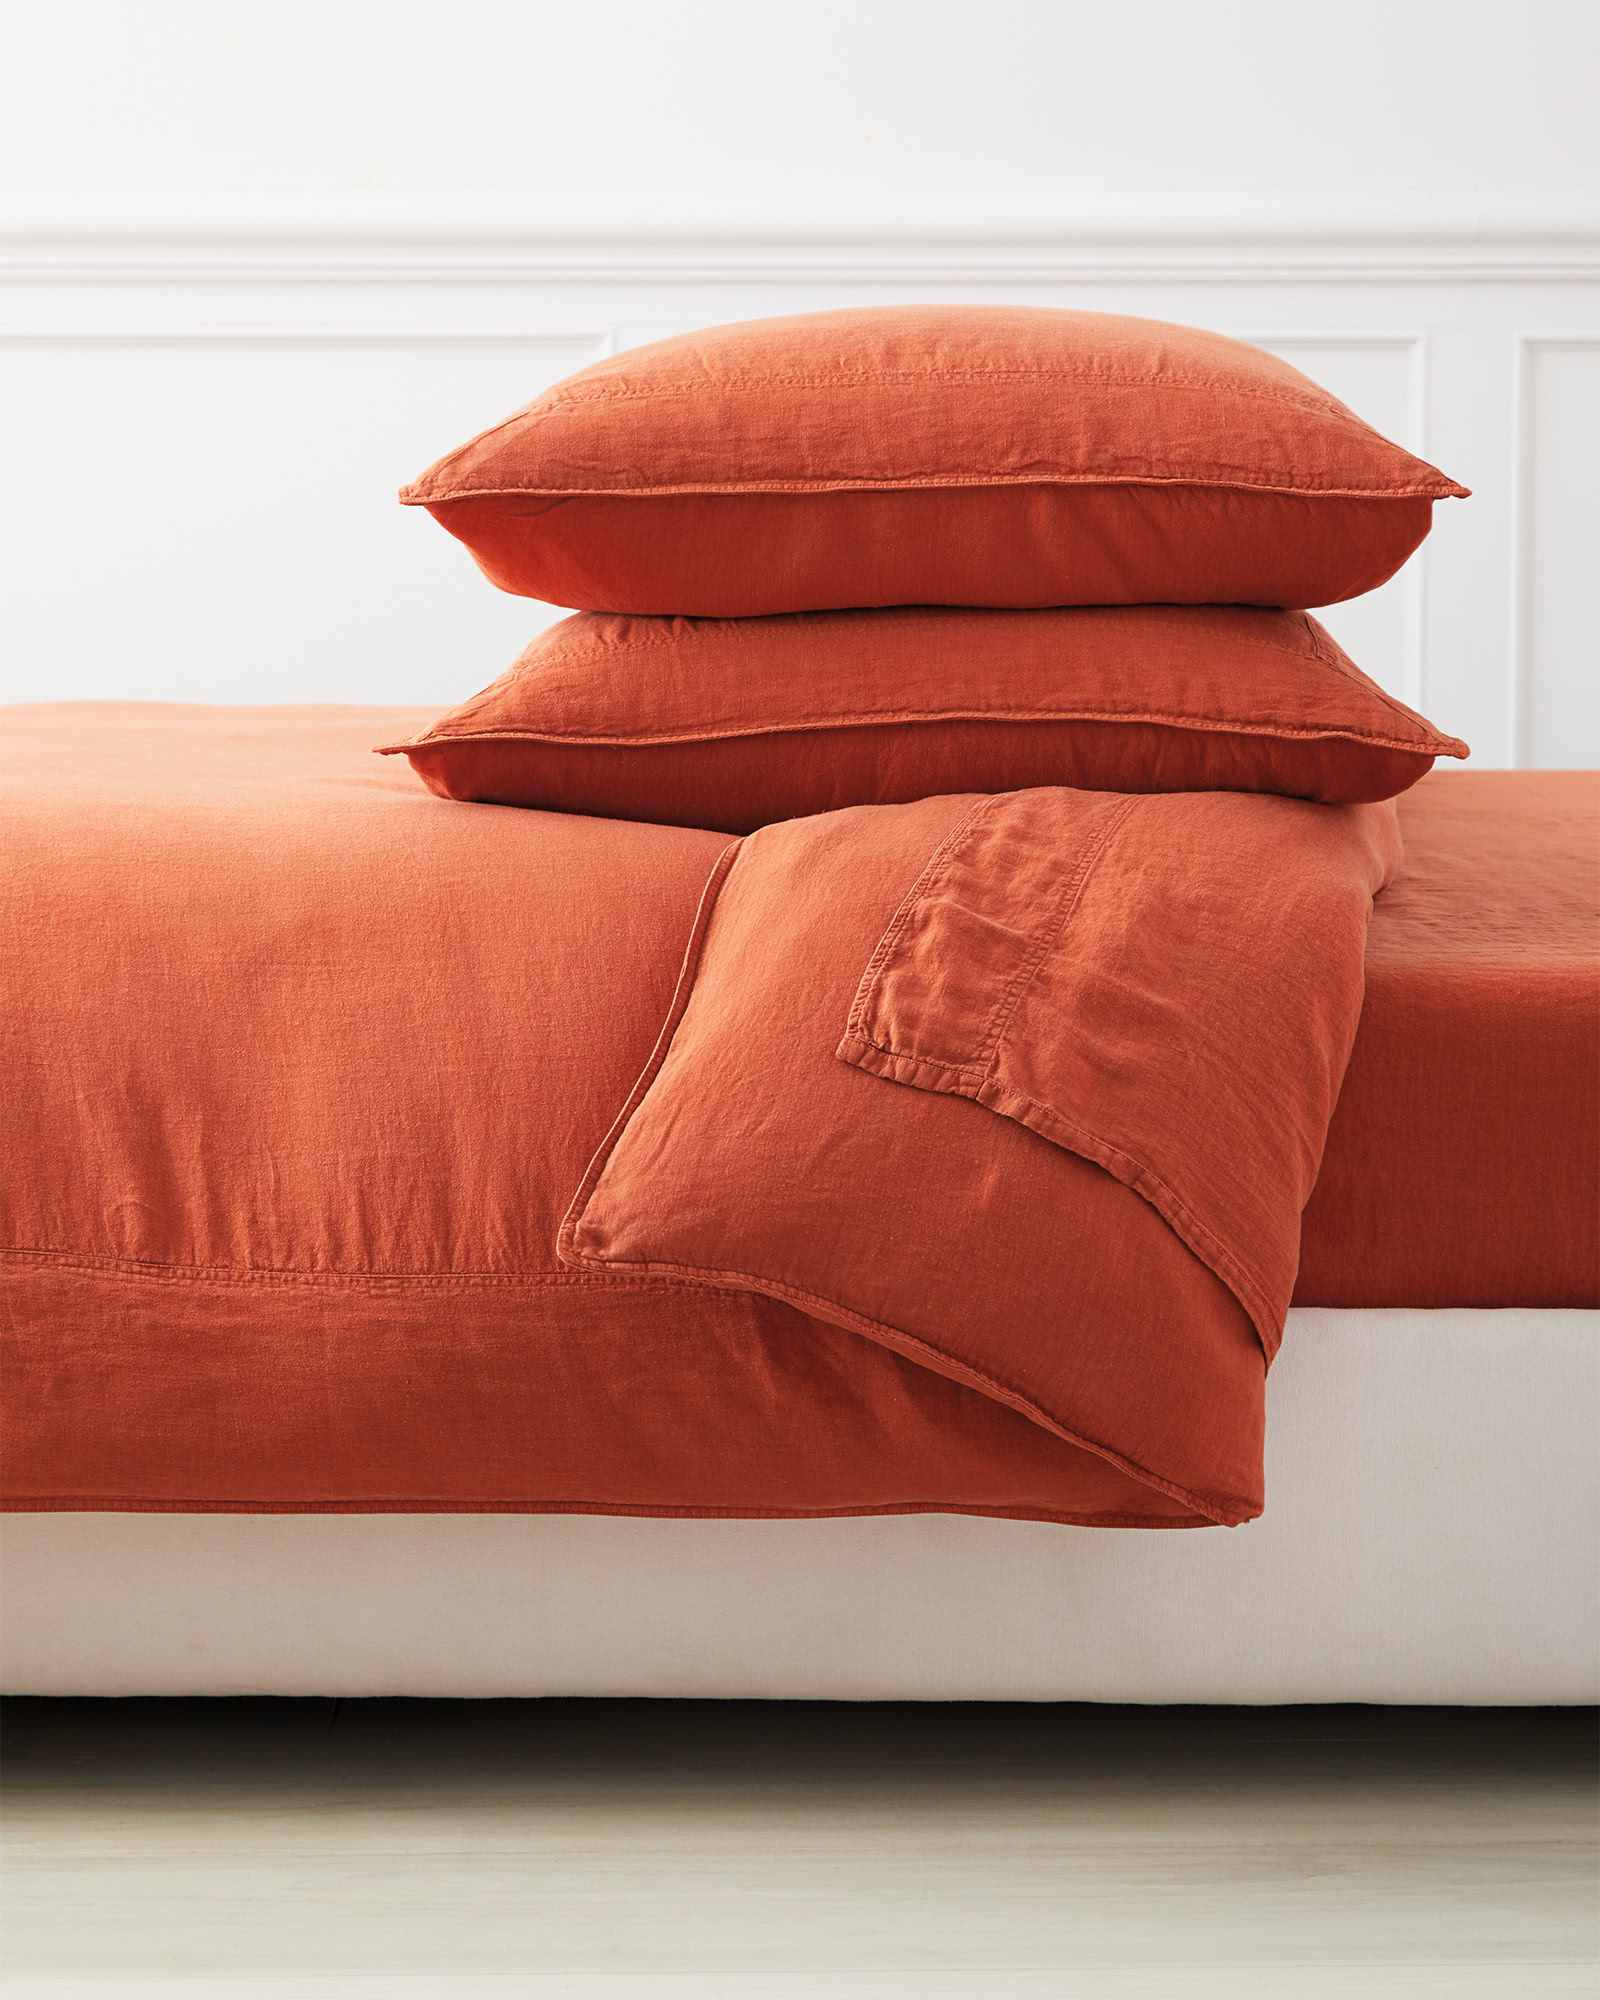 Positano Linen Bedding Set